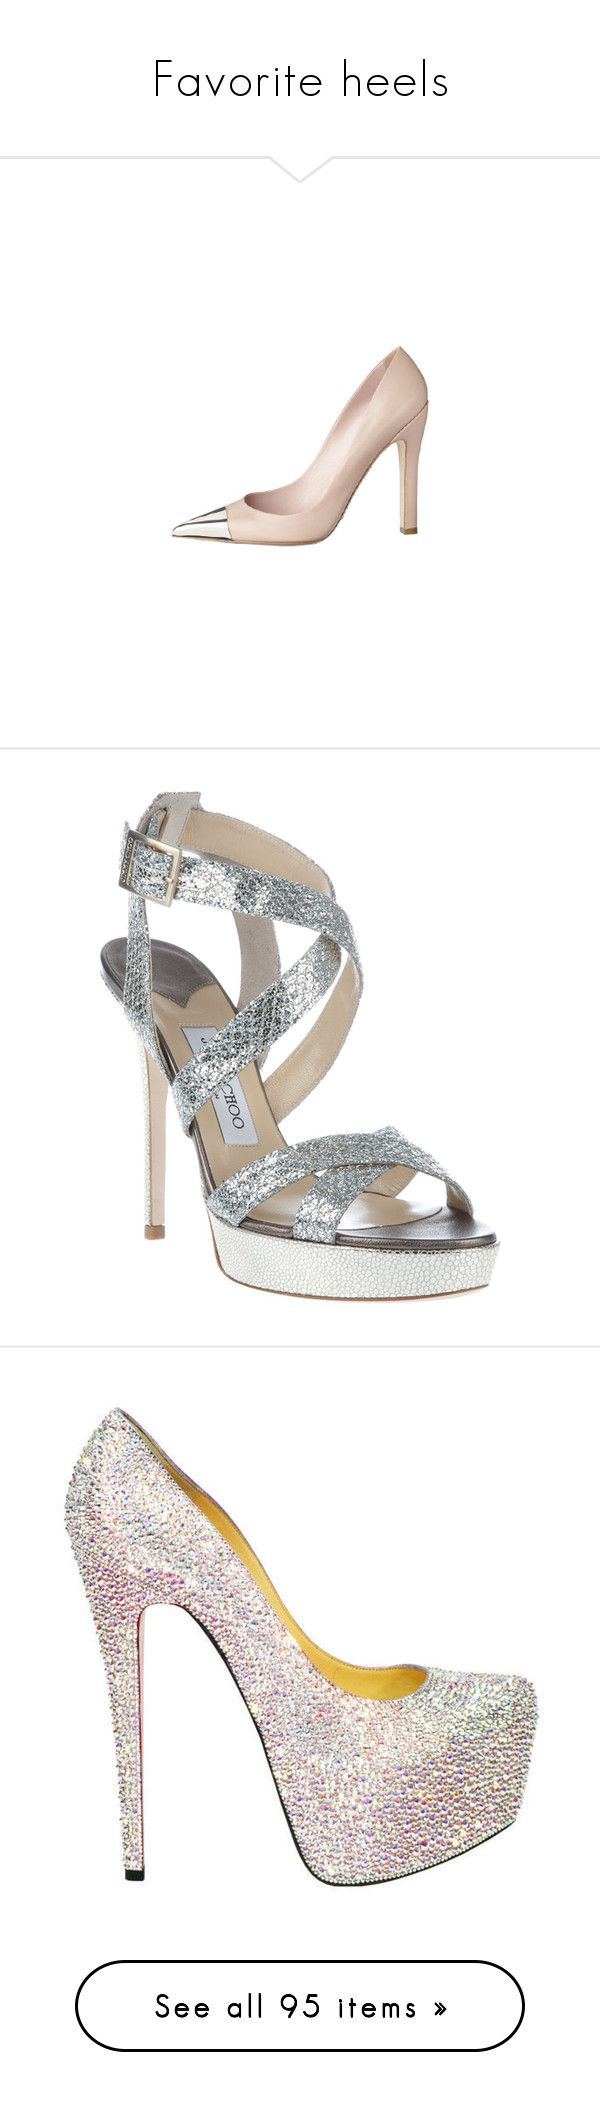 """""""Favorite heels"""" by darlingchick ❤ liked on Polyvore featuring shoes, pumps, heels, louis vuitton, heel pump, louis vuitton shoes, louis vuitton pumps, sandals, sapatos and platform heel sandals"""